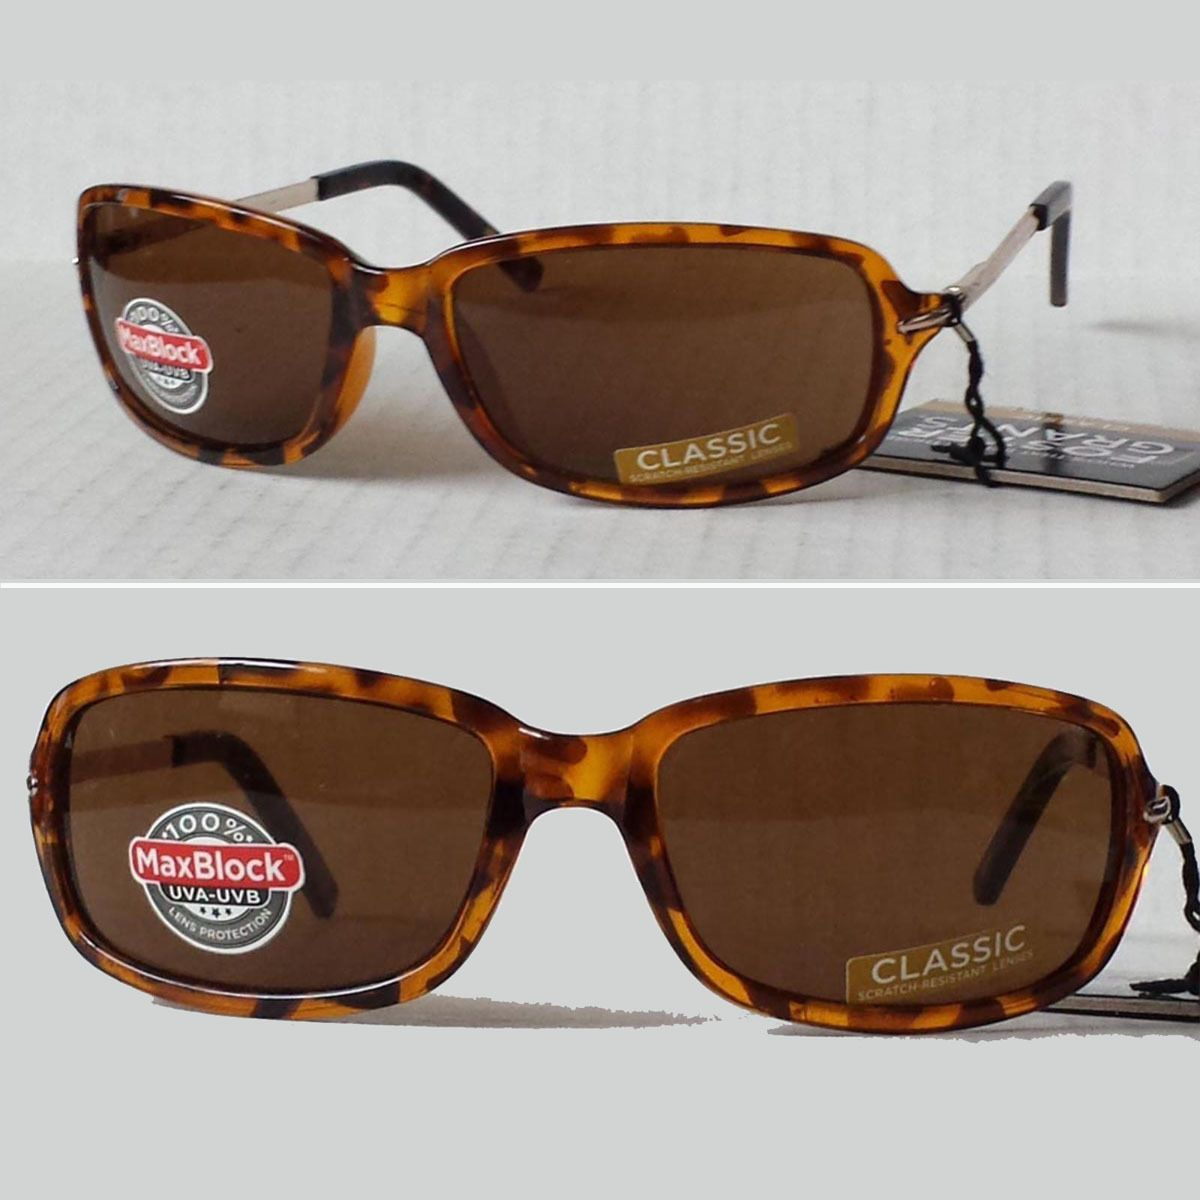 998c144a60290 Foster Grant  women sunglasses brown rectangular IMPRESSION with metal side  bars visit our ebay store